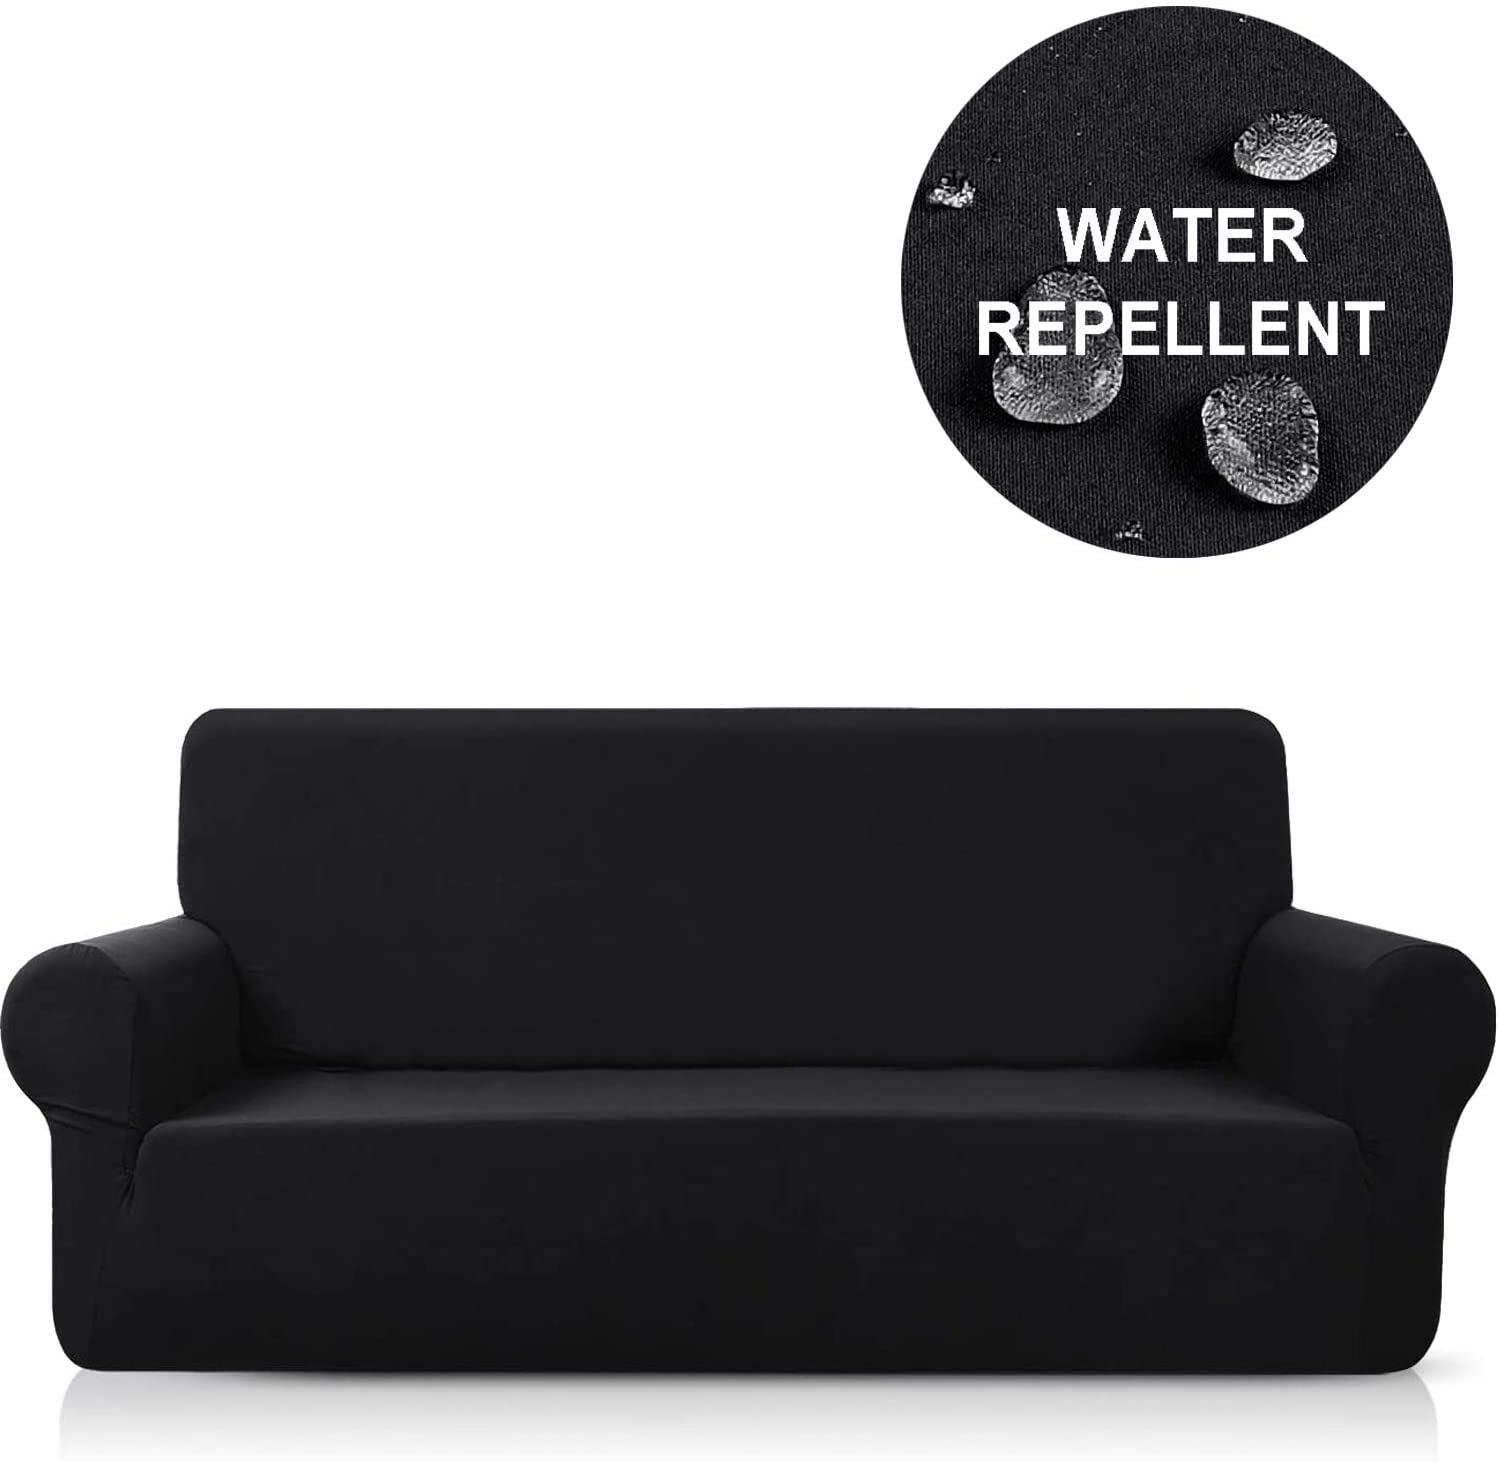 NC HOME Water Repellent High Stretch Sofa Slipcover Reversible Sofa Cover Couch Cover, Furniture Protectors for Dogs with Elastic Bottom, Machine Washable (Large, Black)